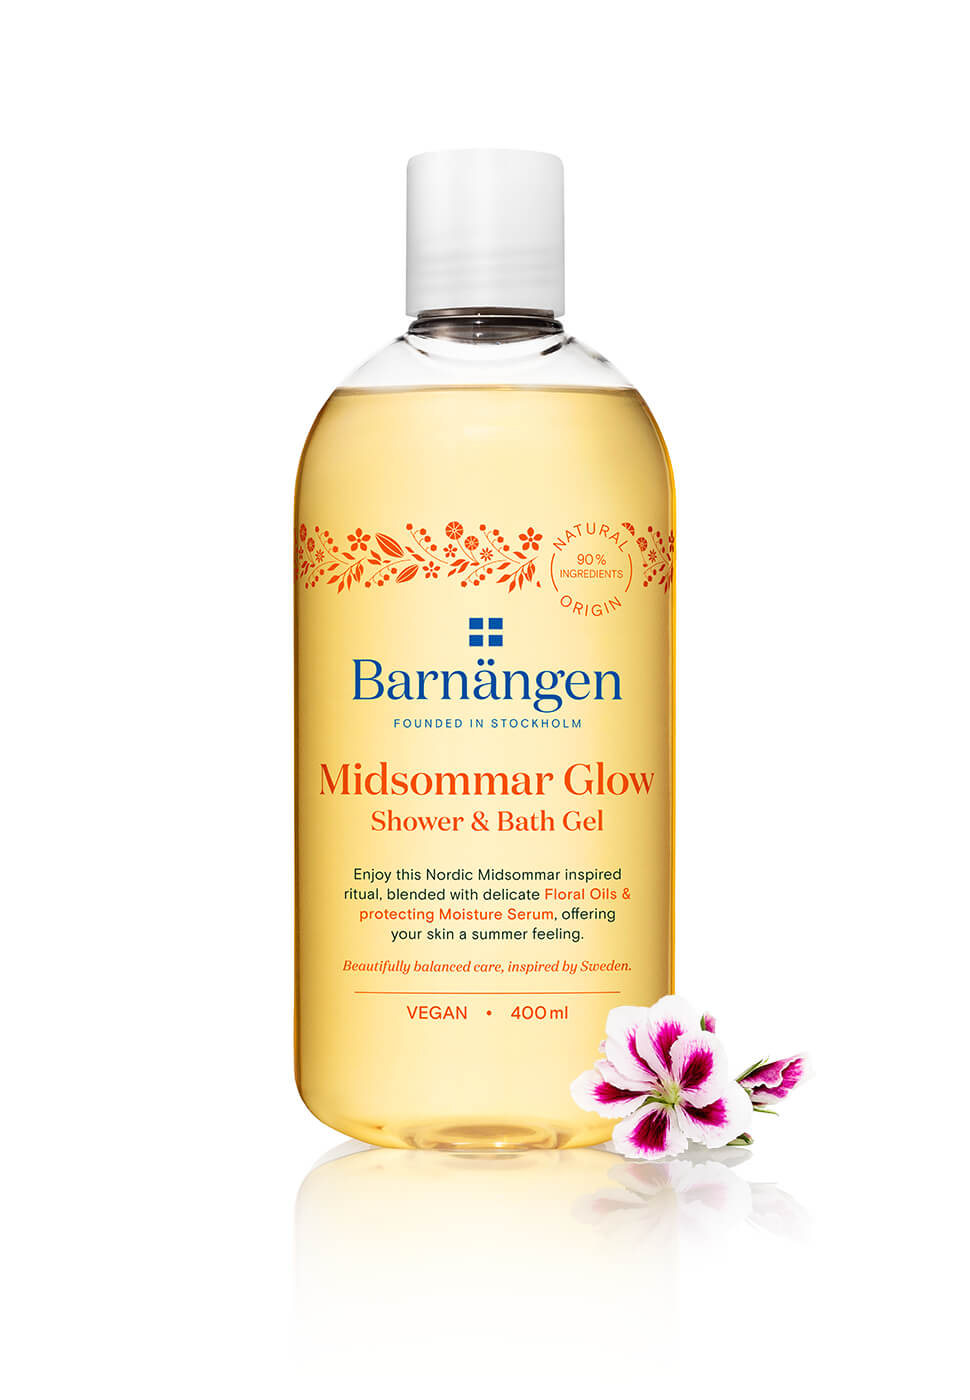 barnangen_com_nordic_rituals_midsommar_glow_shower_and_bath_gel_970x14001